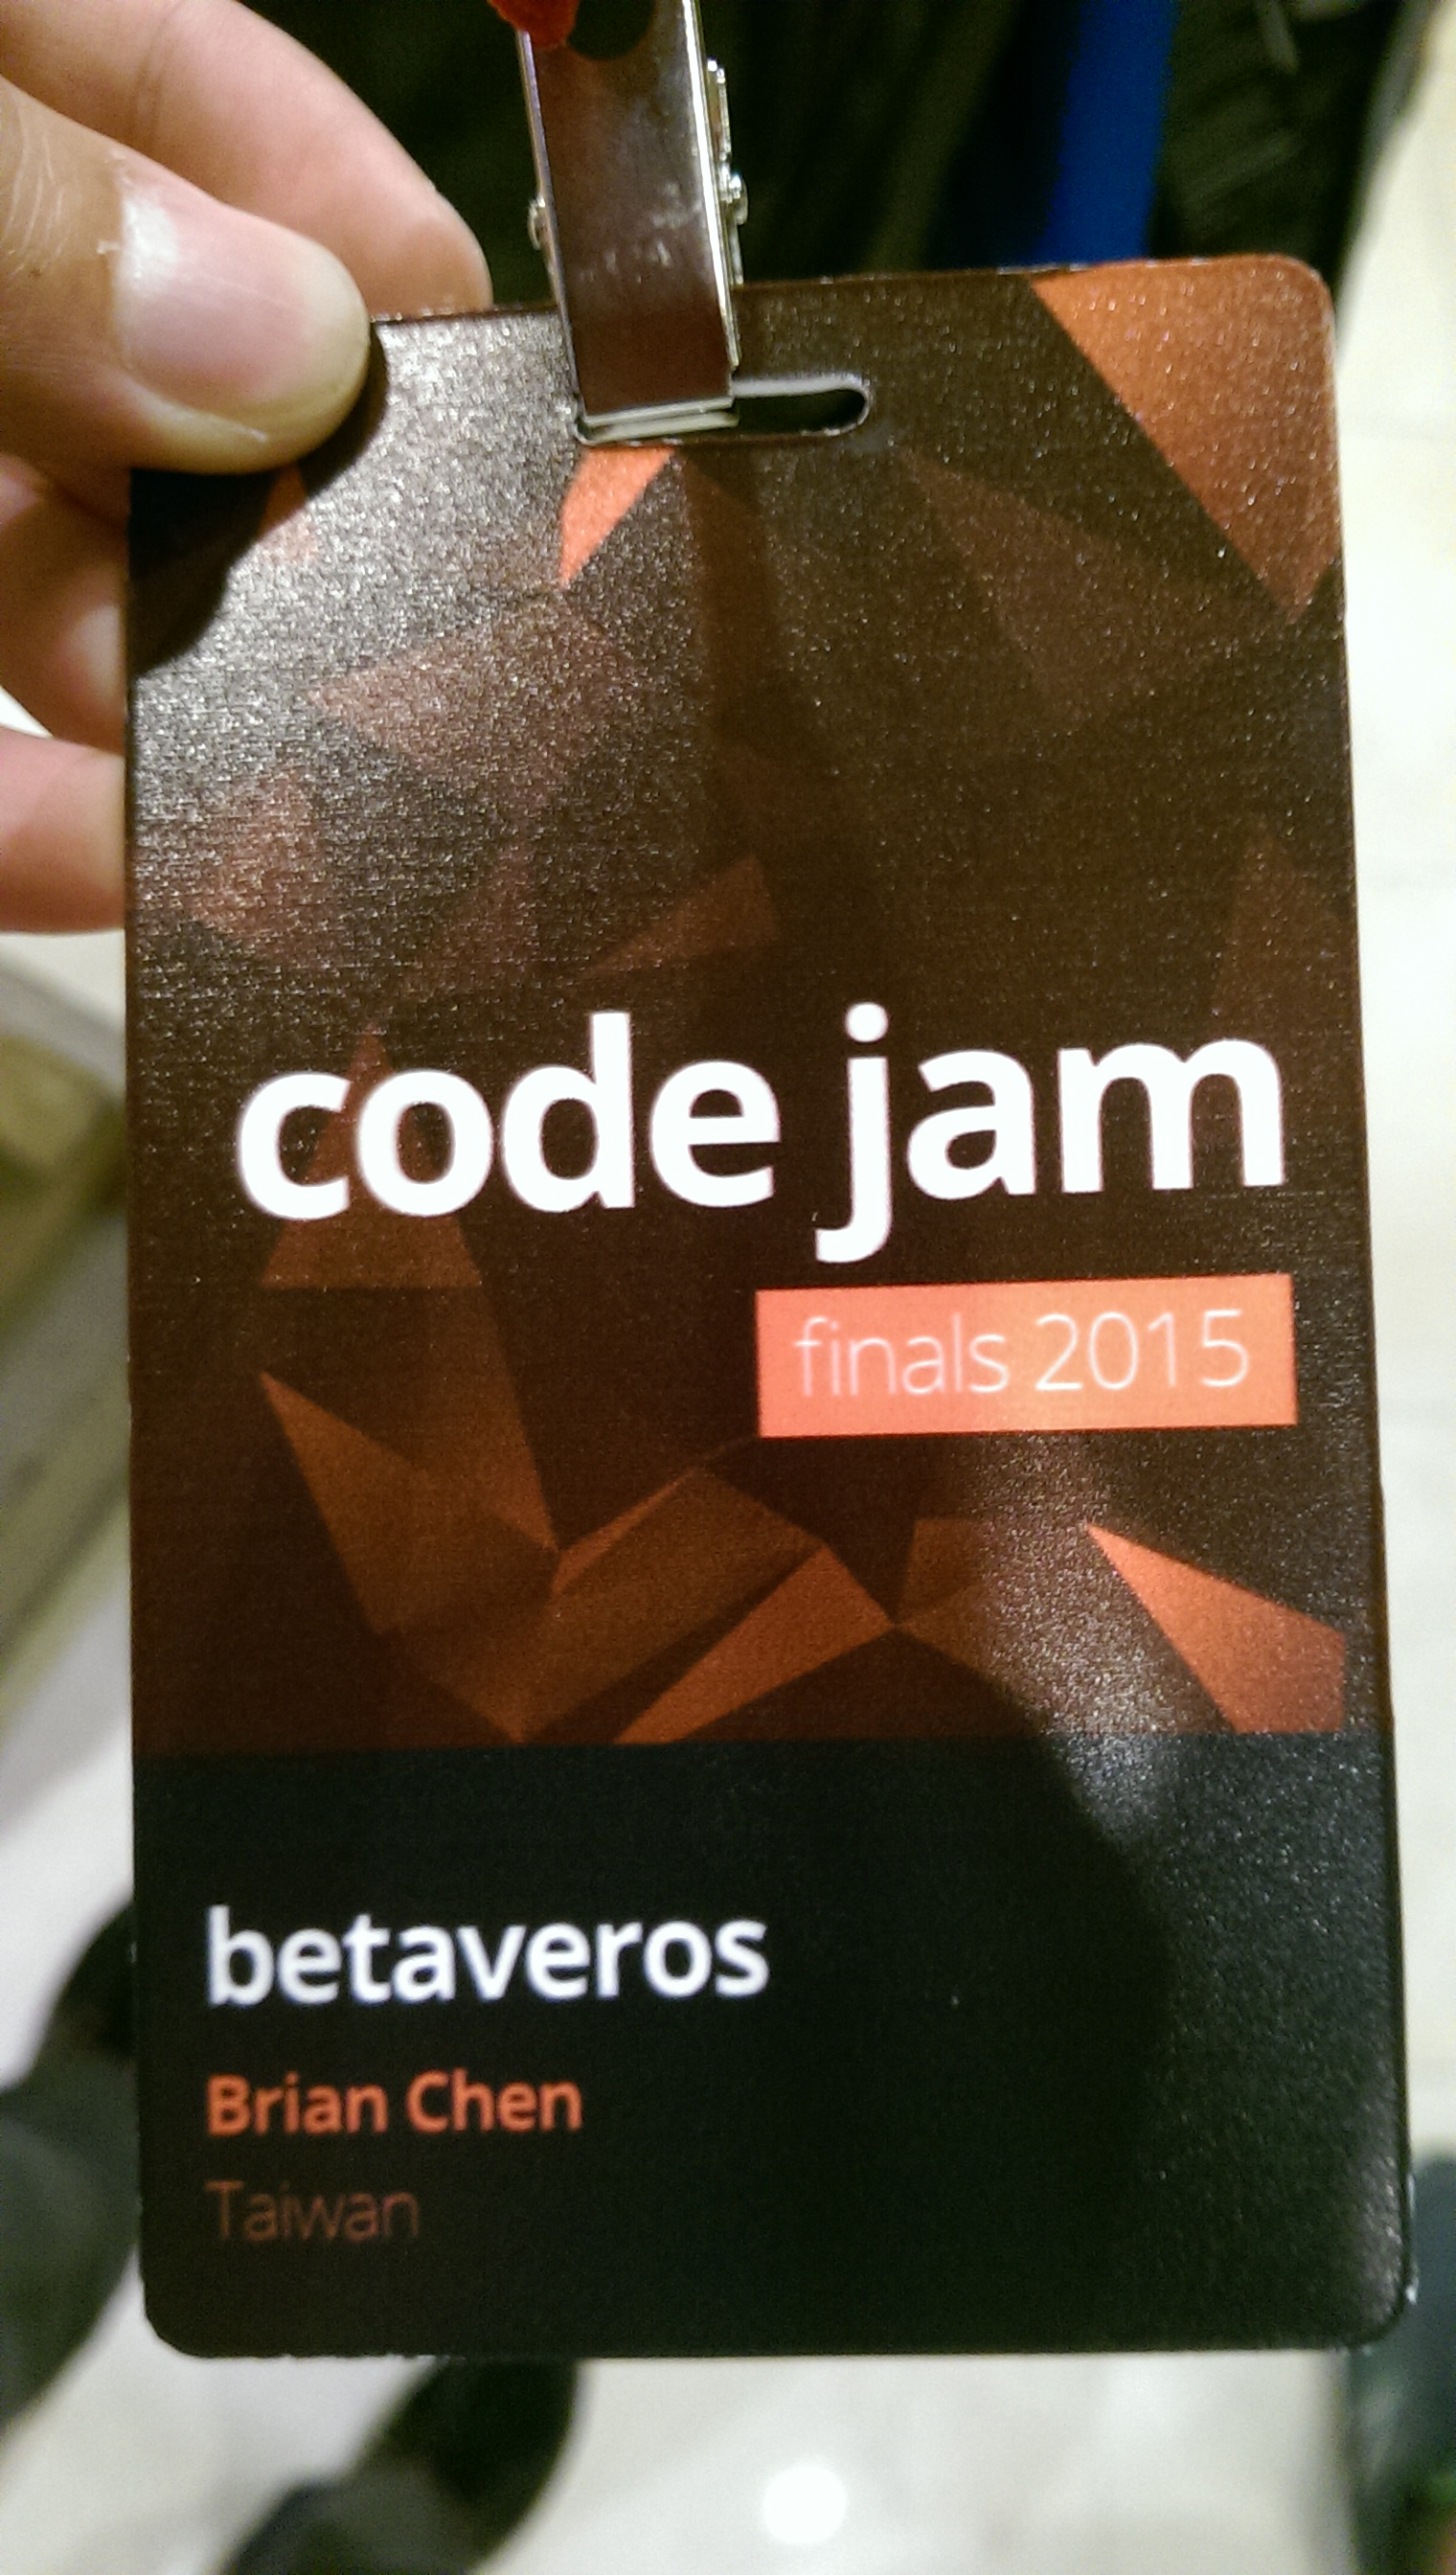 [Google Code Jam 2015 name tag with my name and handle and country]